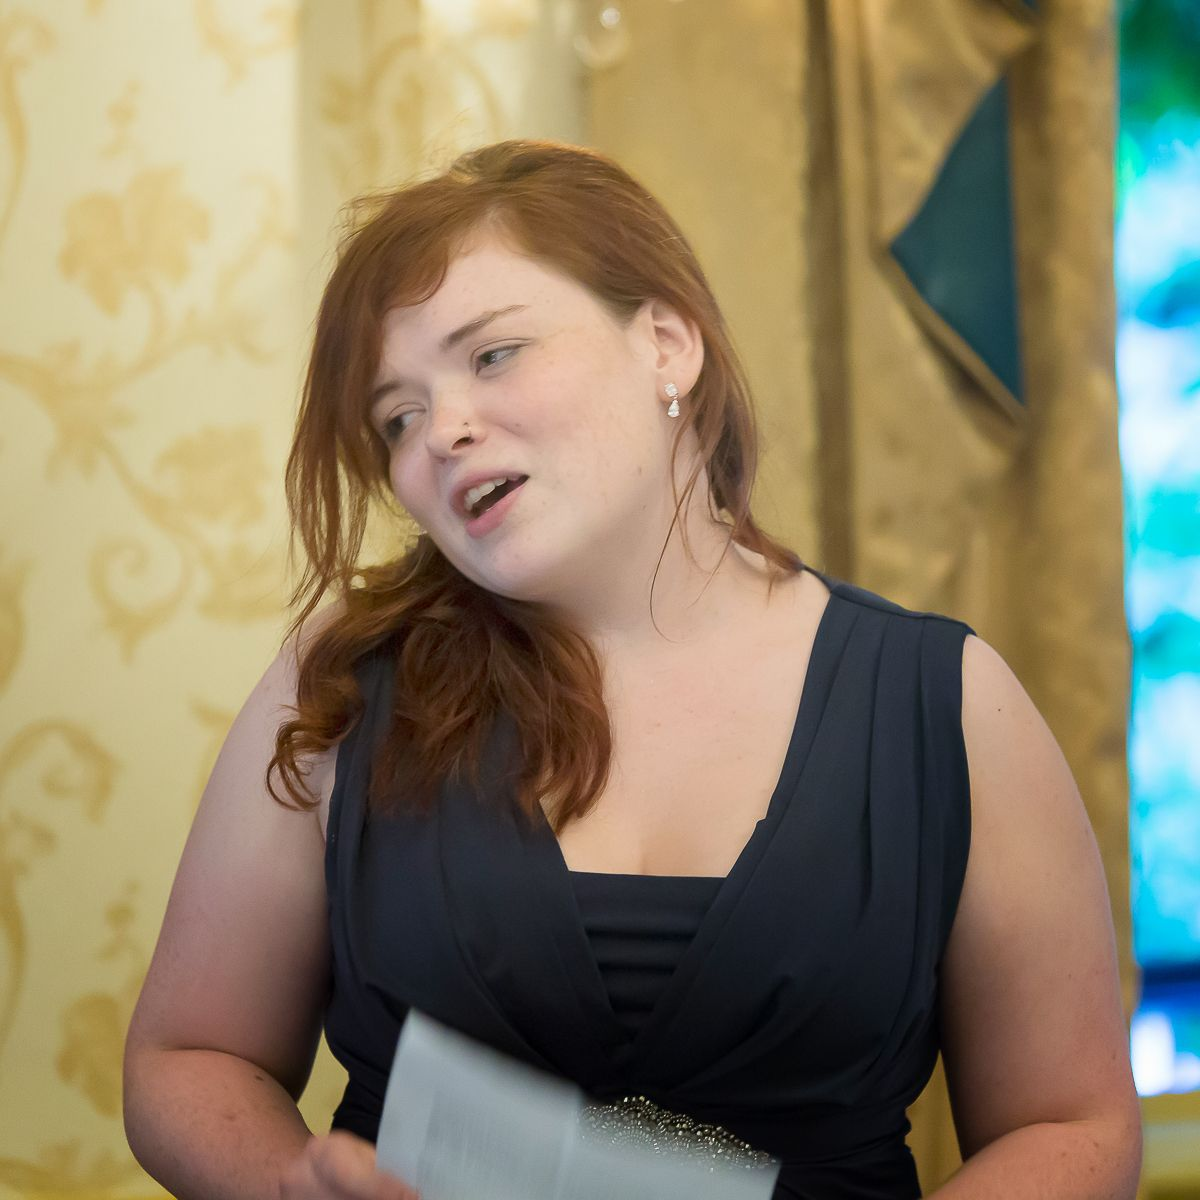 The Best Woman Makes Her Speech During A Wedding Breakfast Held In Pavilion